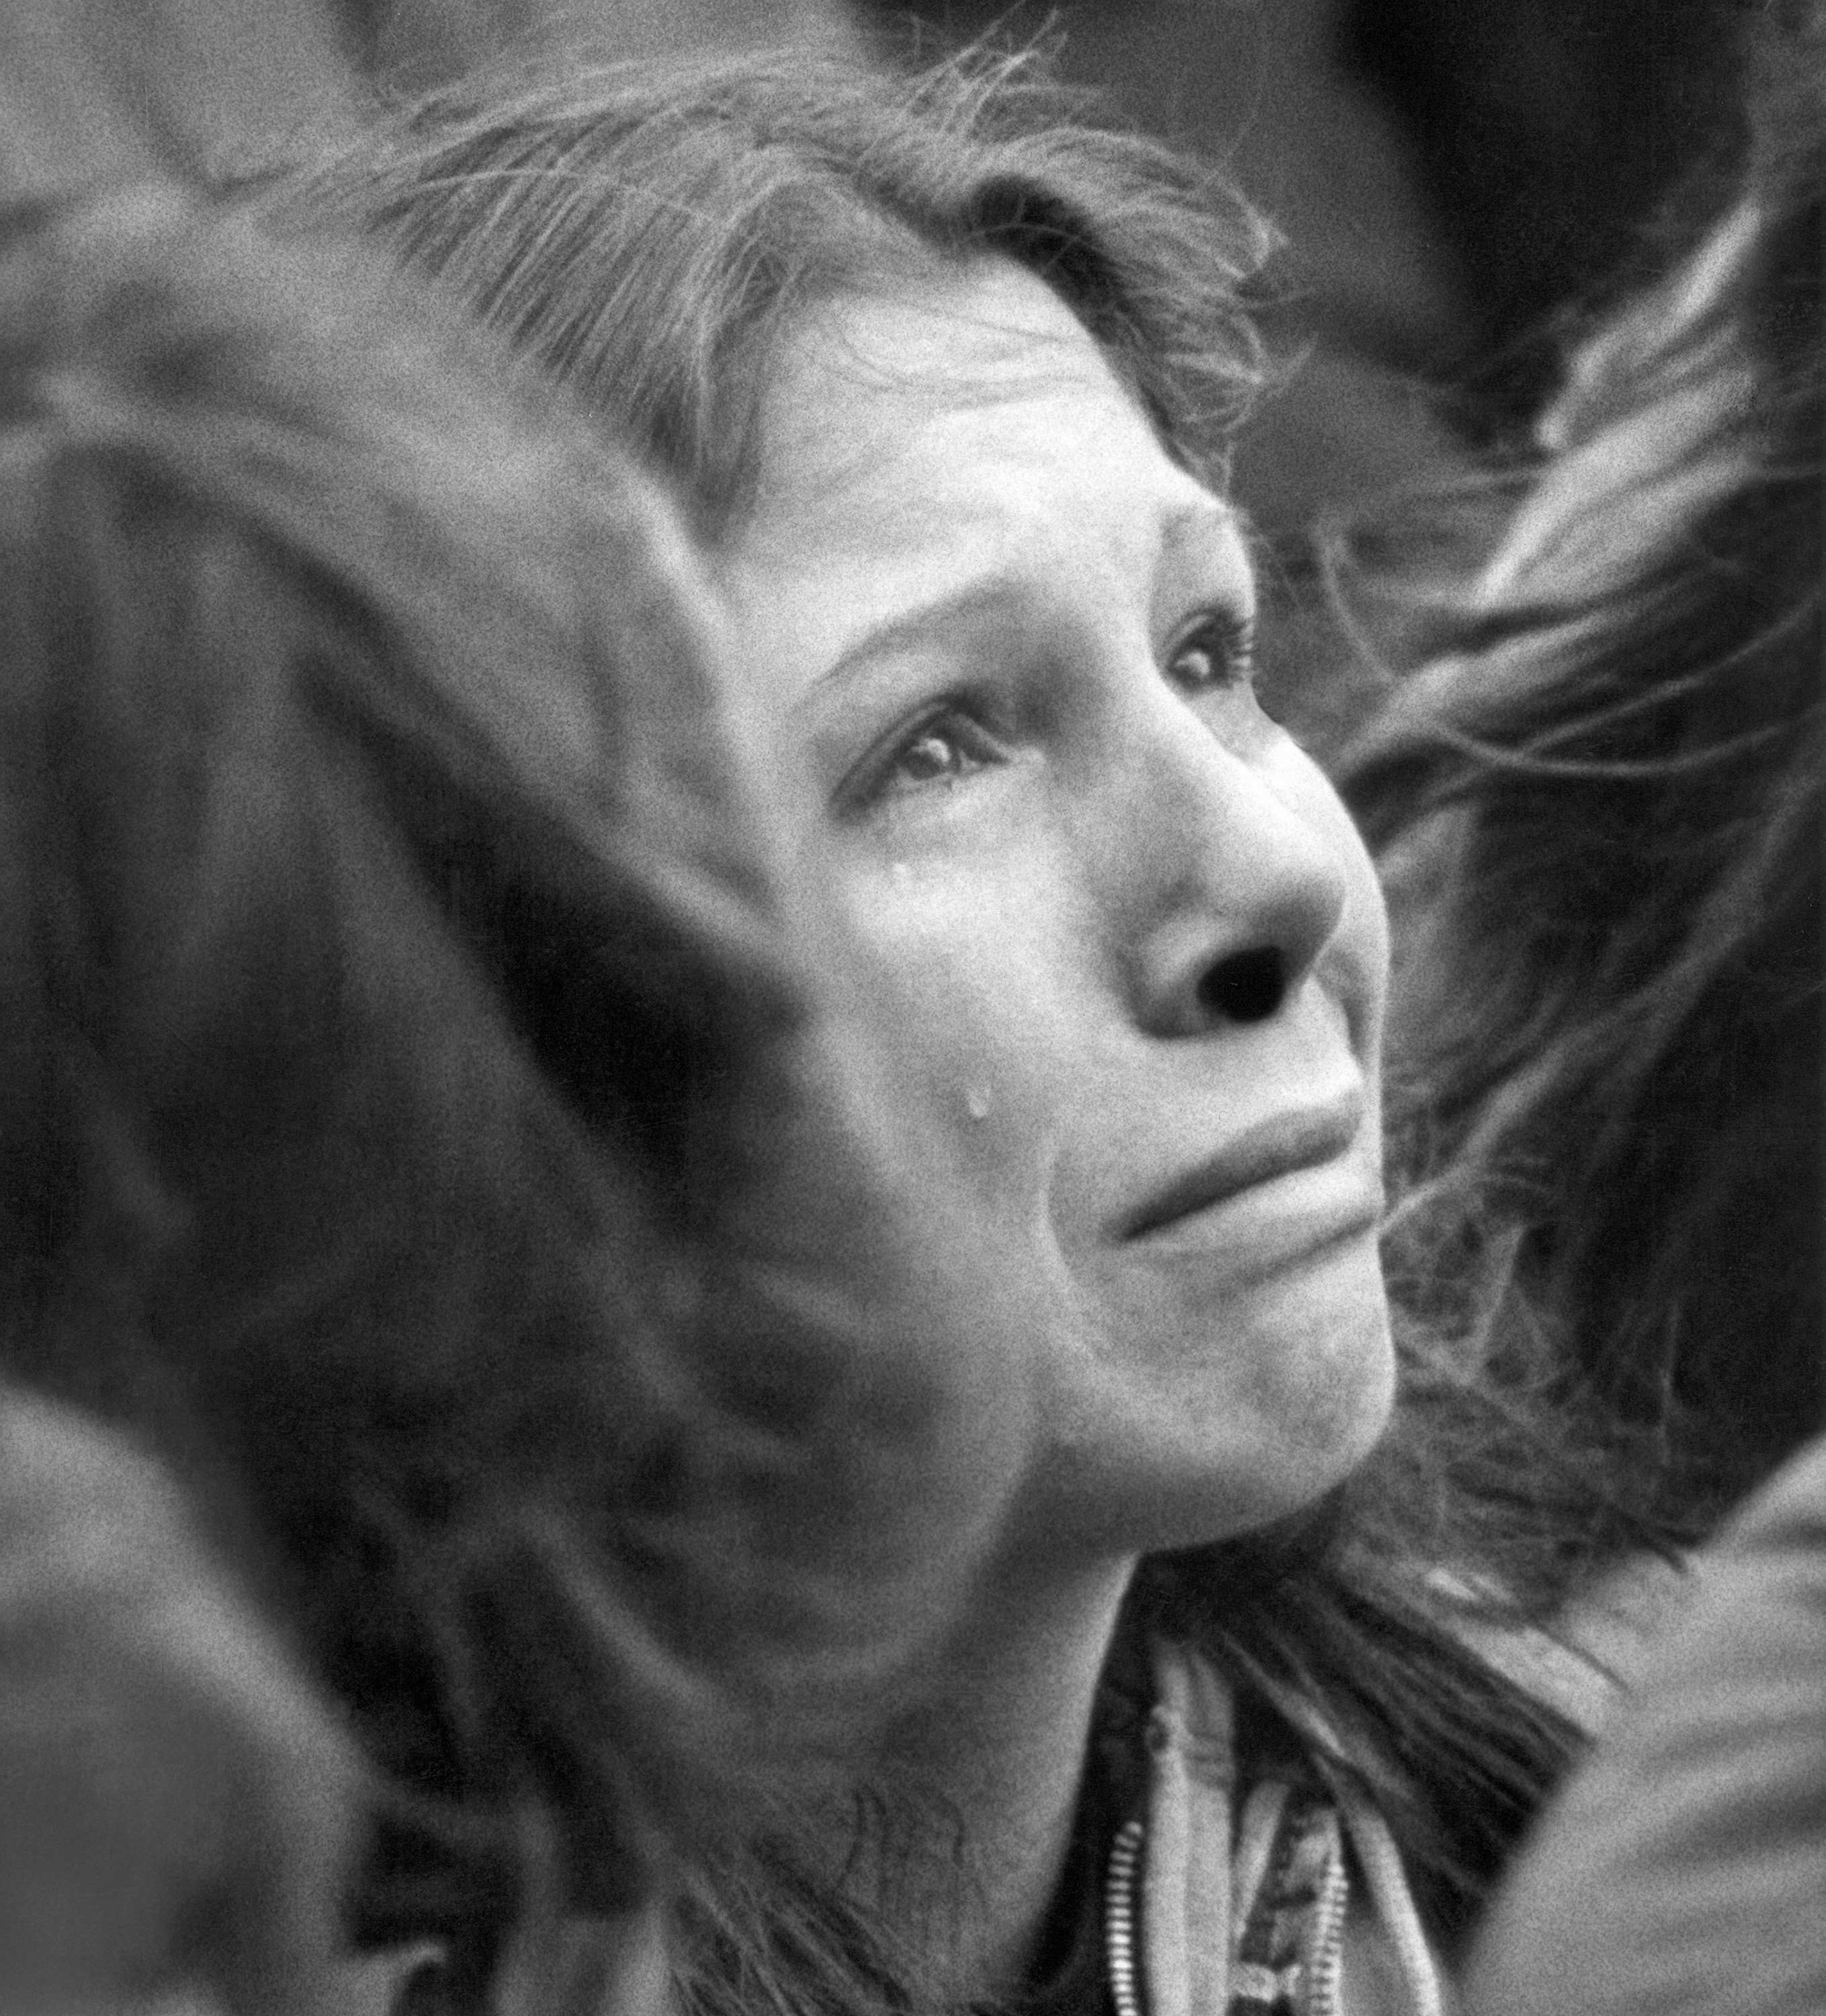 FILE - In this Dec. 14, 1980, file photo, a woman weeps during a ten minute silent vigil for John Lennon held in front of Trinity Church in Boston. An estimated crowd of 2,000 people came to honor the former Beatle who was murdered in New York. Thirty-five years ago on Dec. 8, Mark David Chapman shot and killed Lennon, a former Beatles member. (AP Photo/John Martell, File)